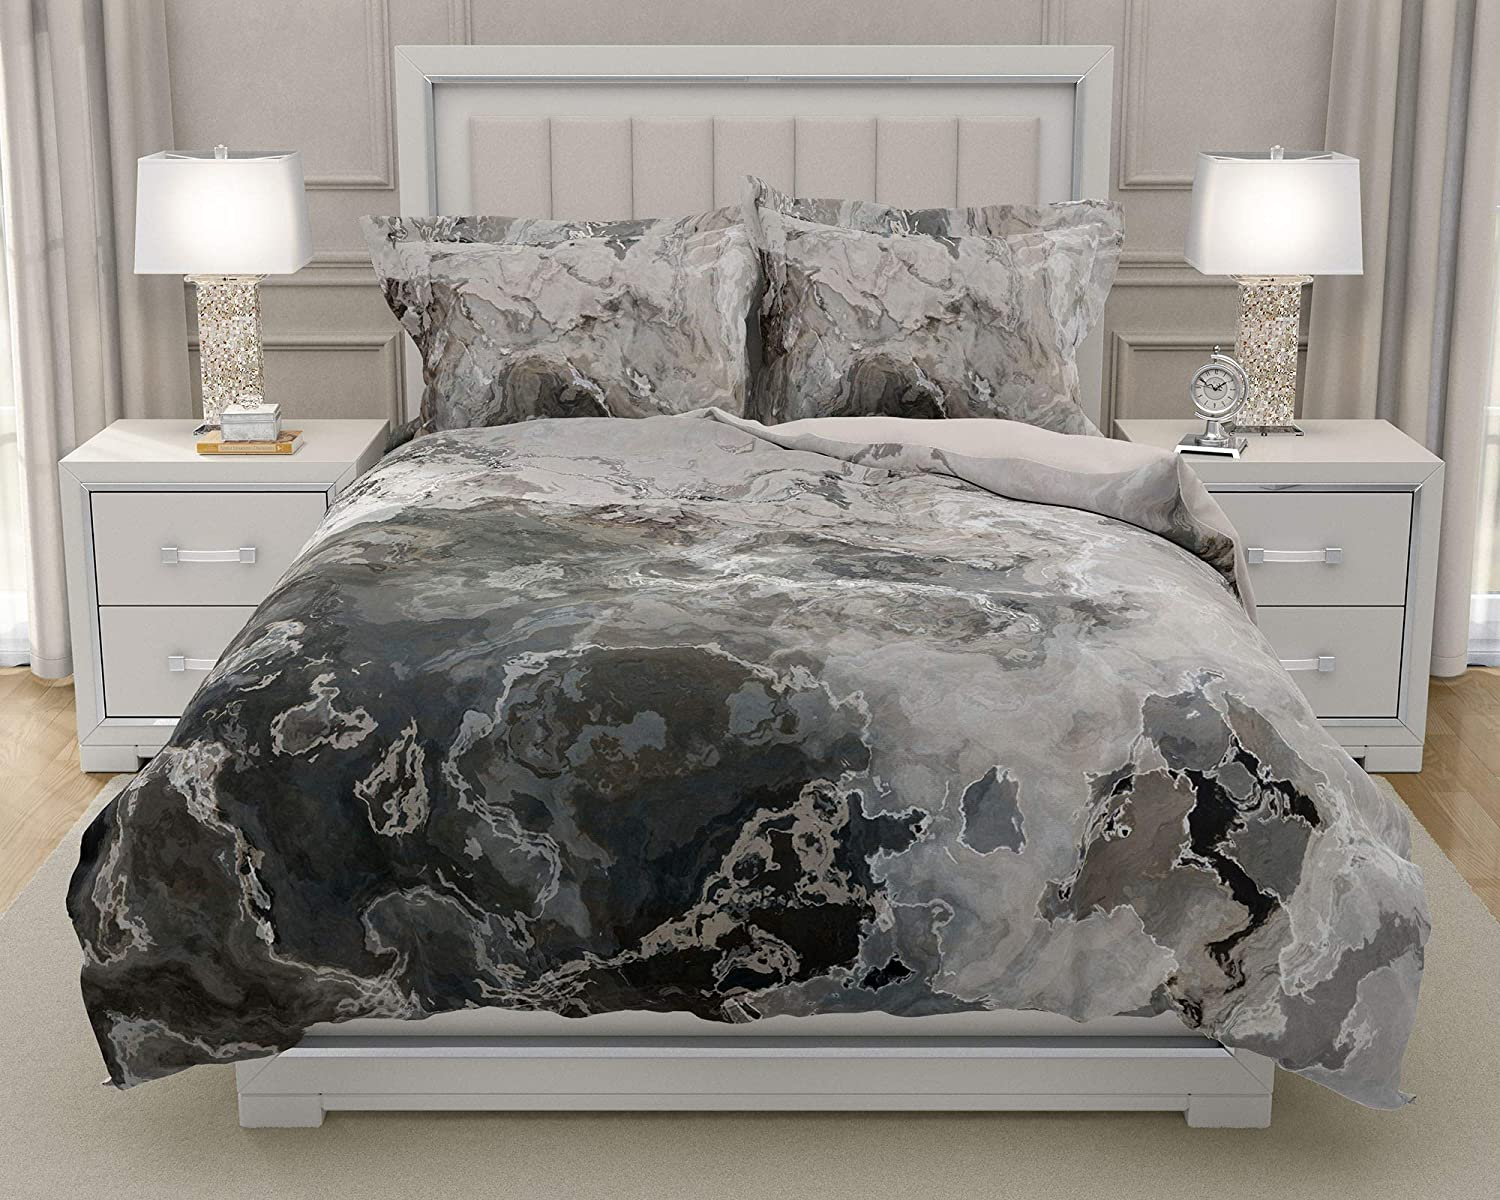 Image of Home and Kitchen King or Queen 3 pc Duvet Cover Set with abstract art, Geologic